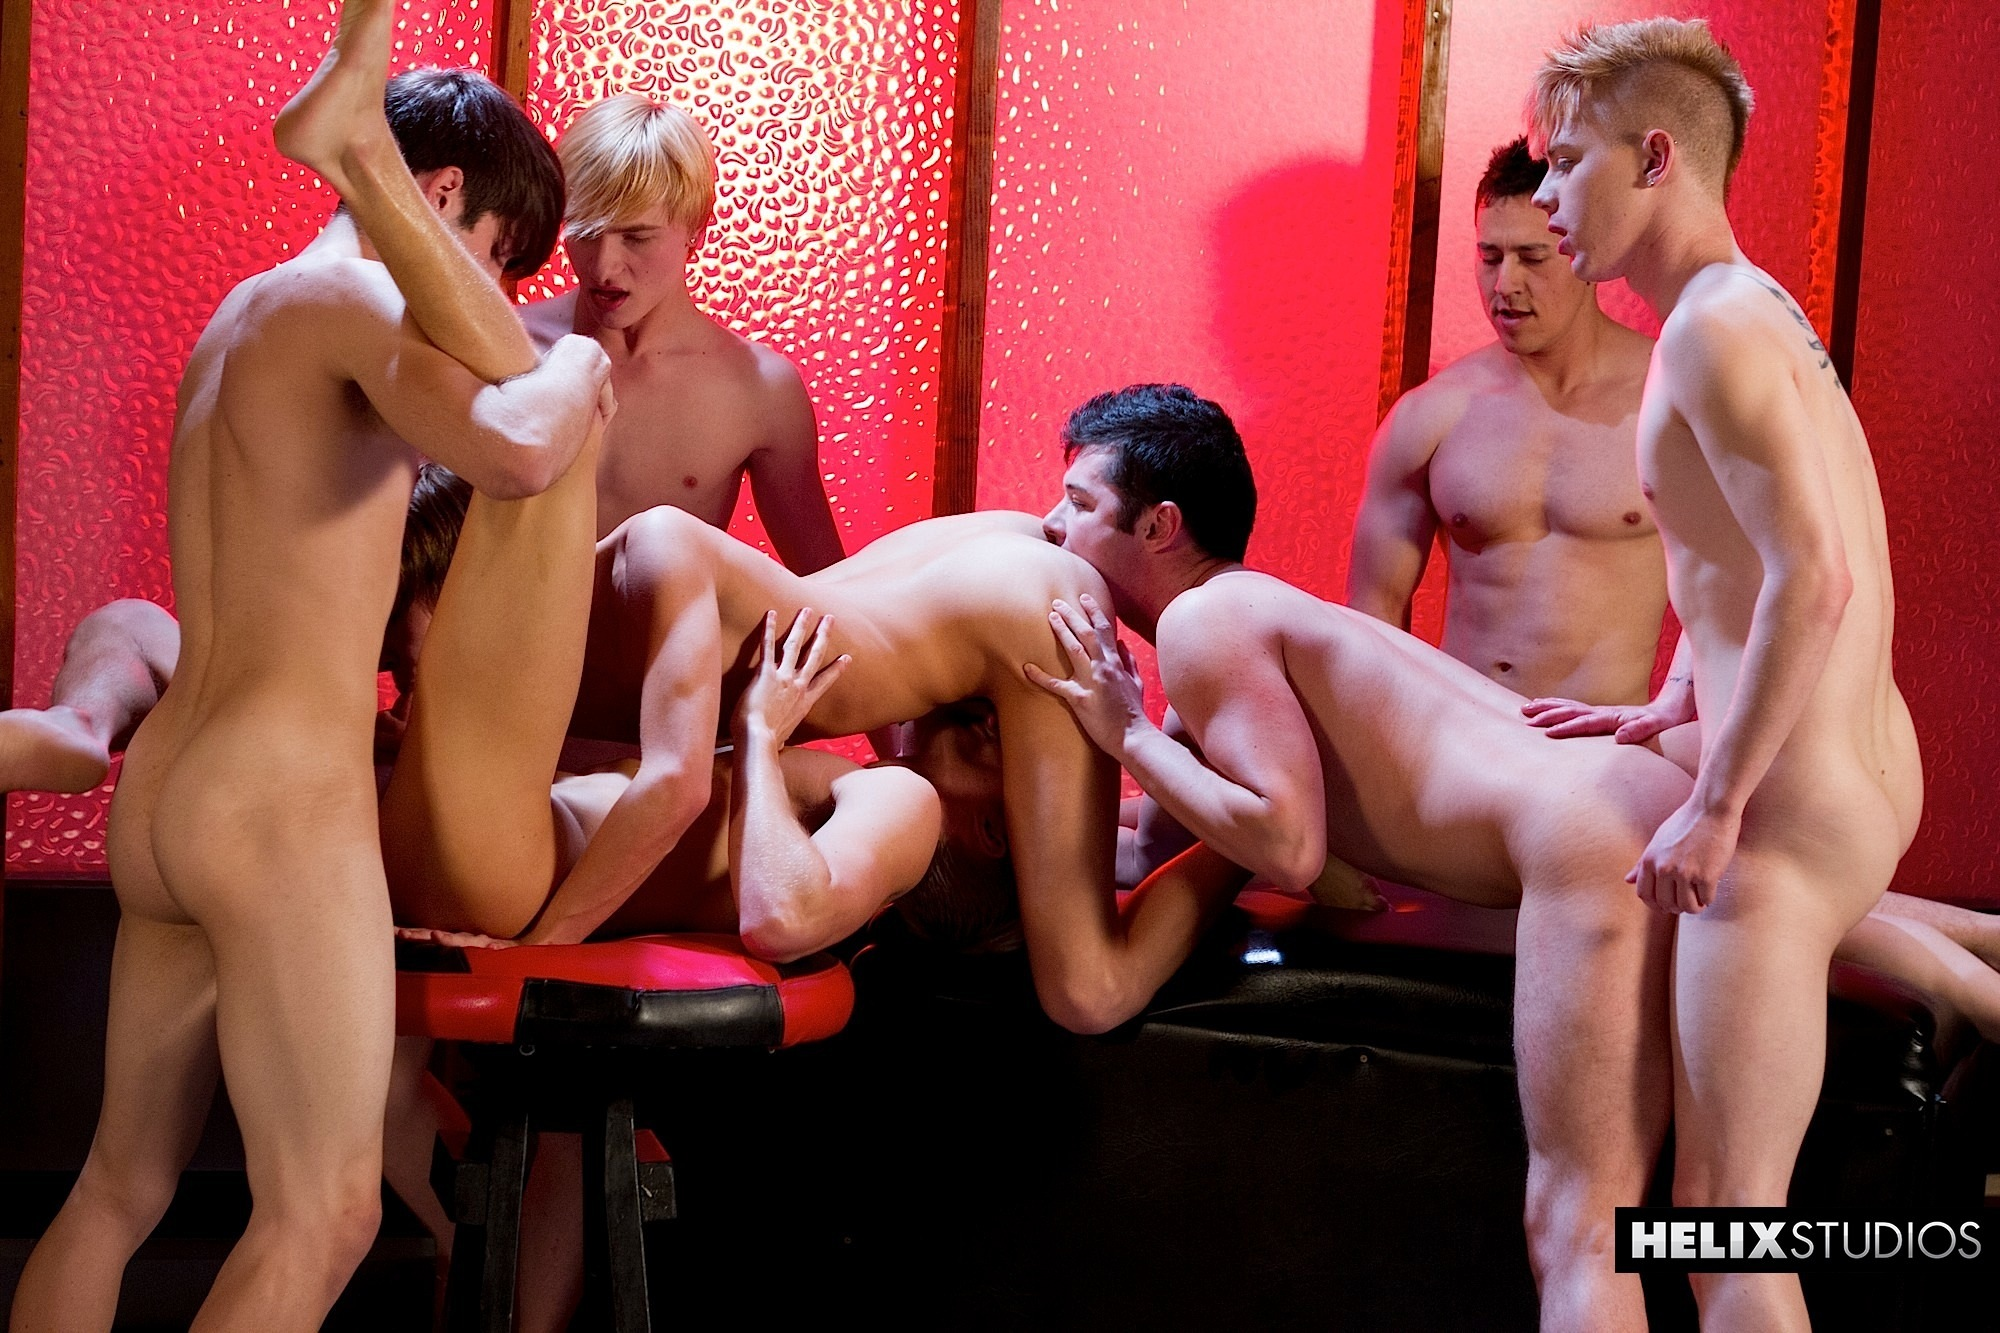 Helix-Studios-Max-Carter-Kyle-Ross-Aiden-Summers-Chase-Young-Dominic-Jones-Jessie-Montgomery-Kyler-Ash-Amateur-Twink-Orgy-10 Huge Cock Amateur Twink Orgy Featuring 7 Hot Amateur Twinks